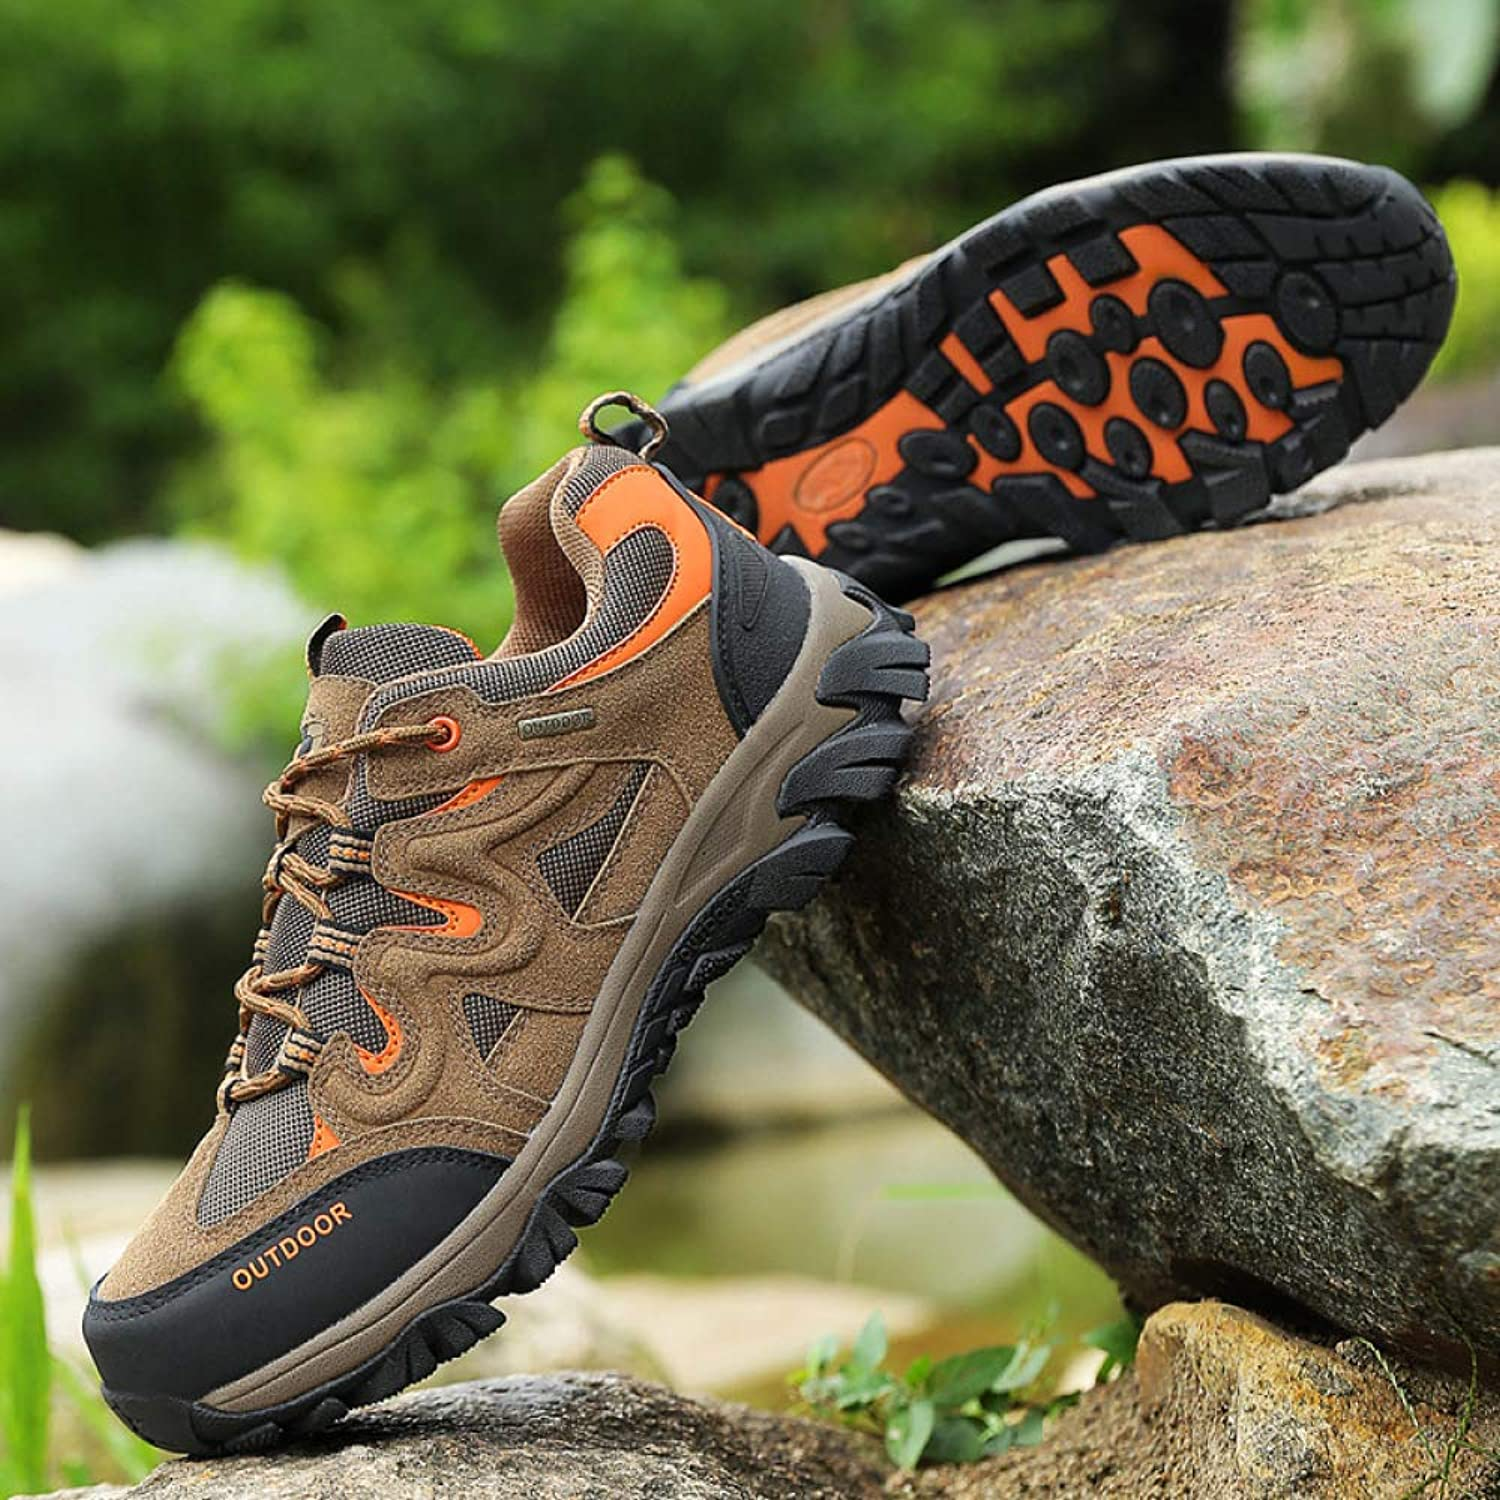 shoes Leather Outdoor Hiking, Large Size Sneakers, Casual Walking